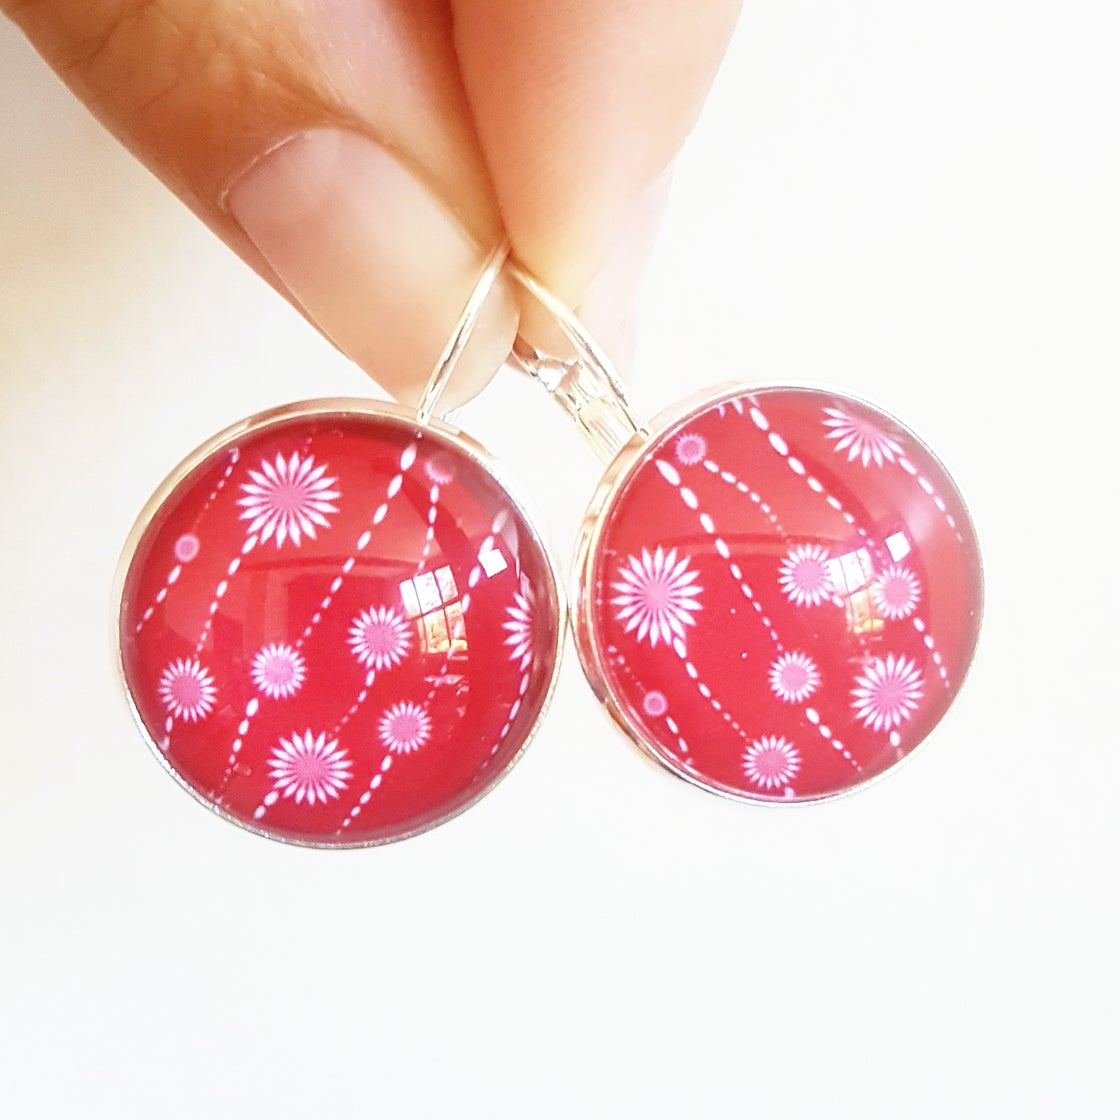 Image of Earrings - Red & White Blooms